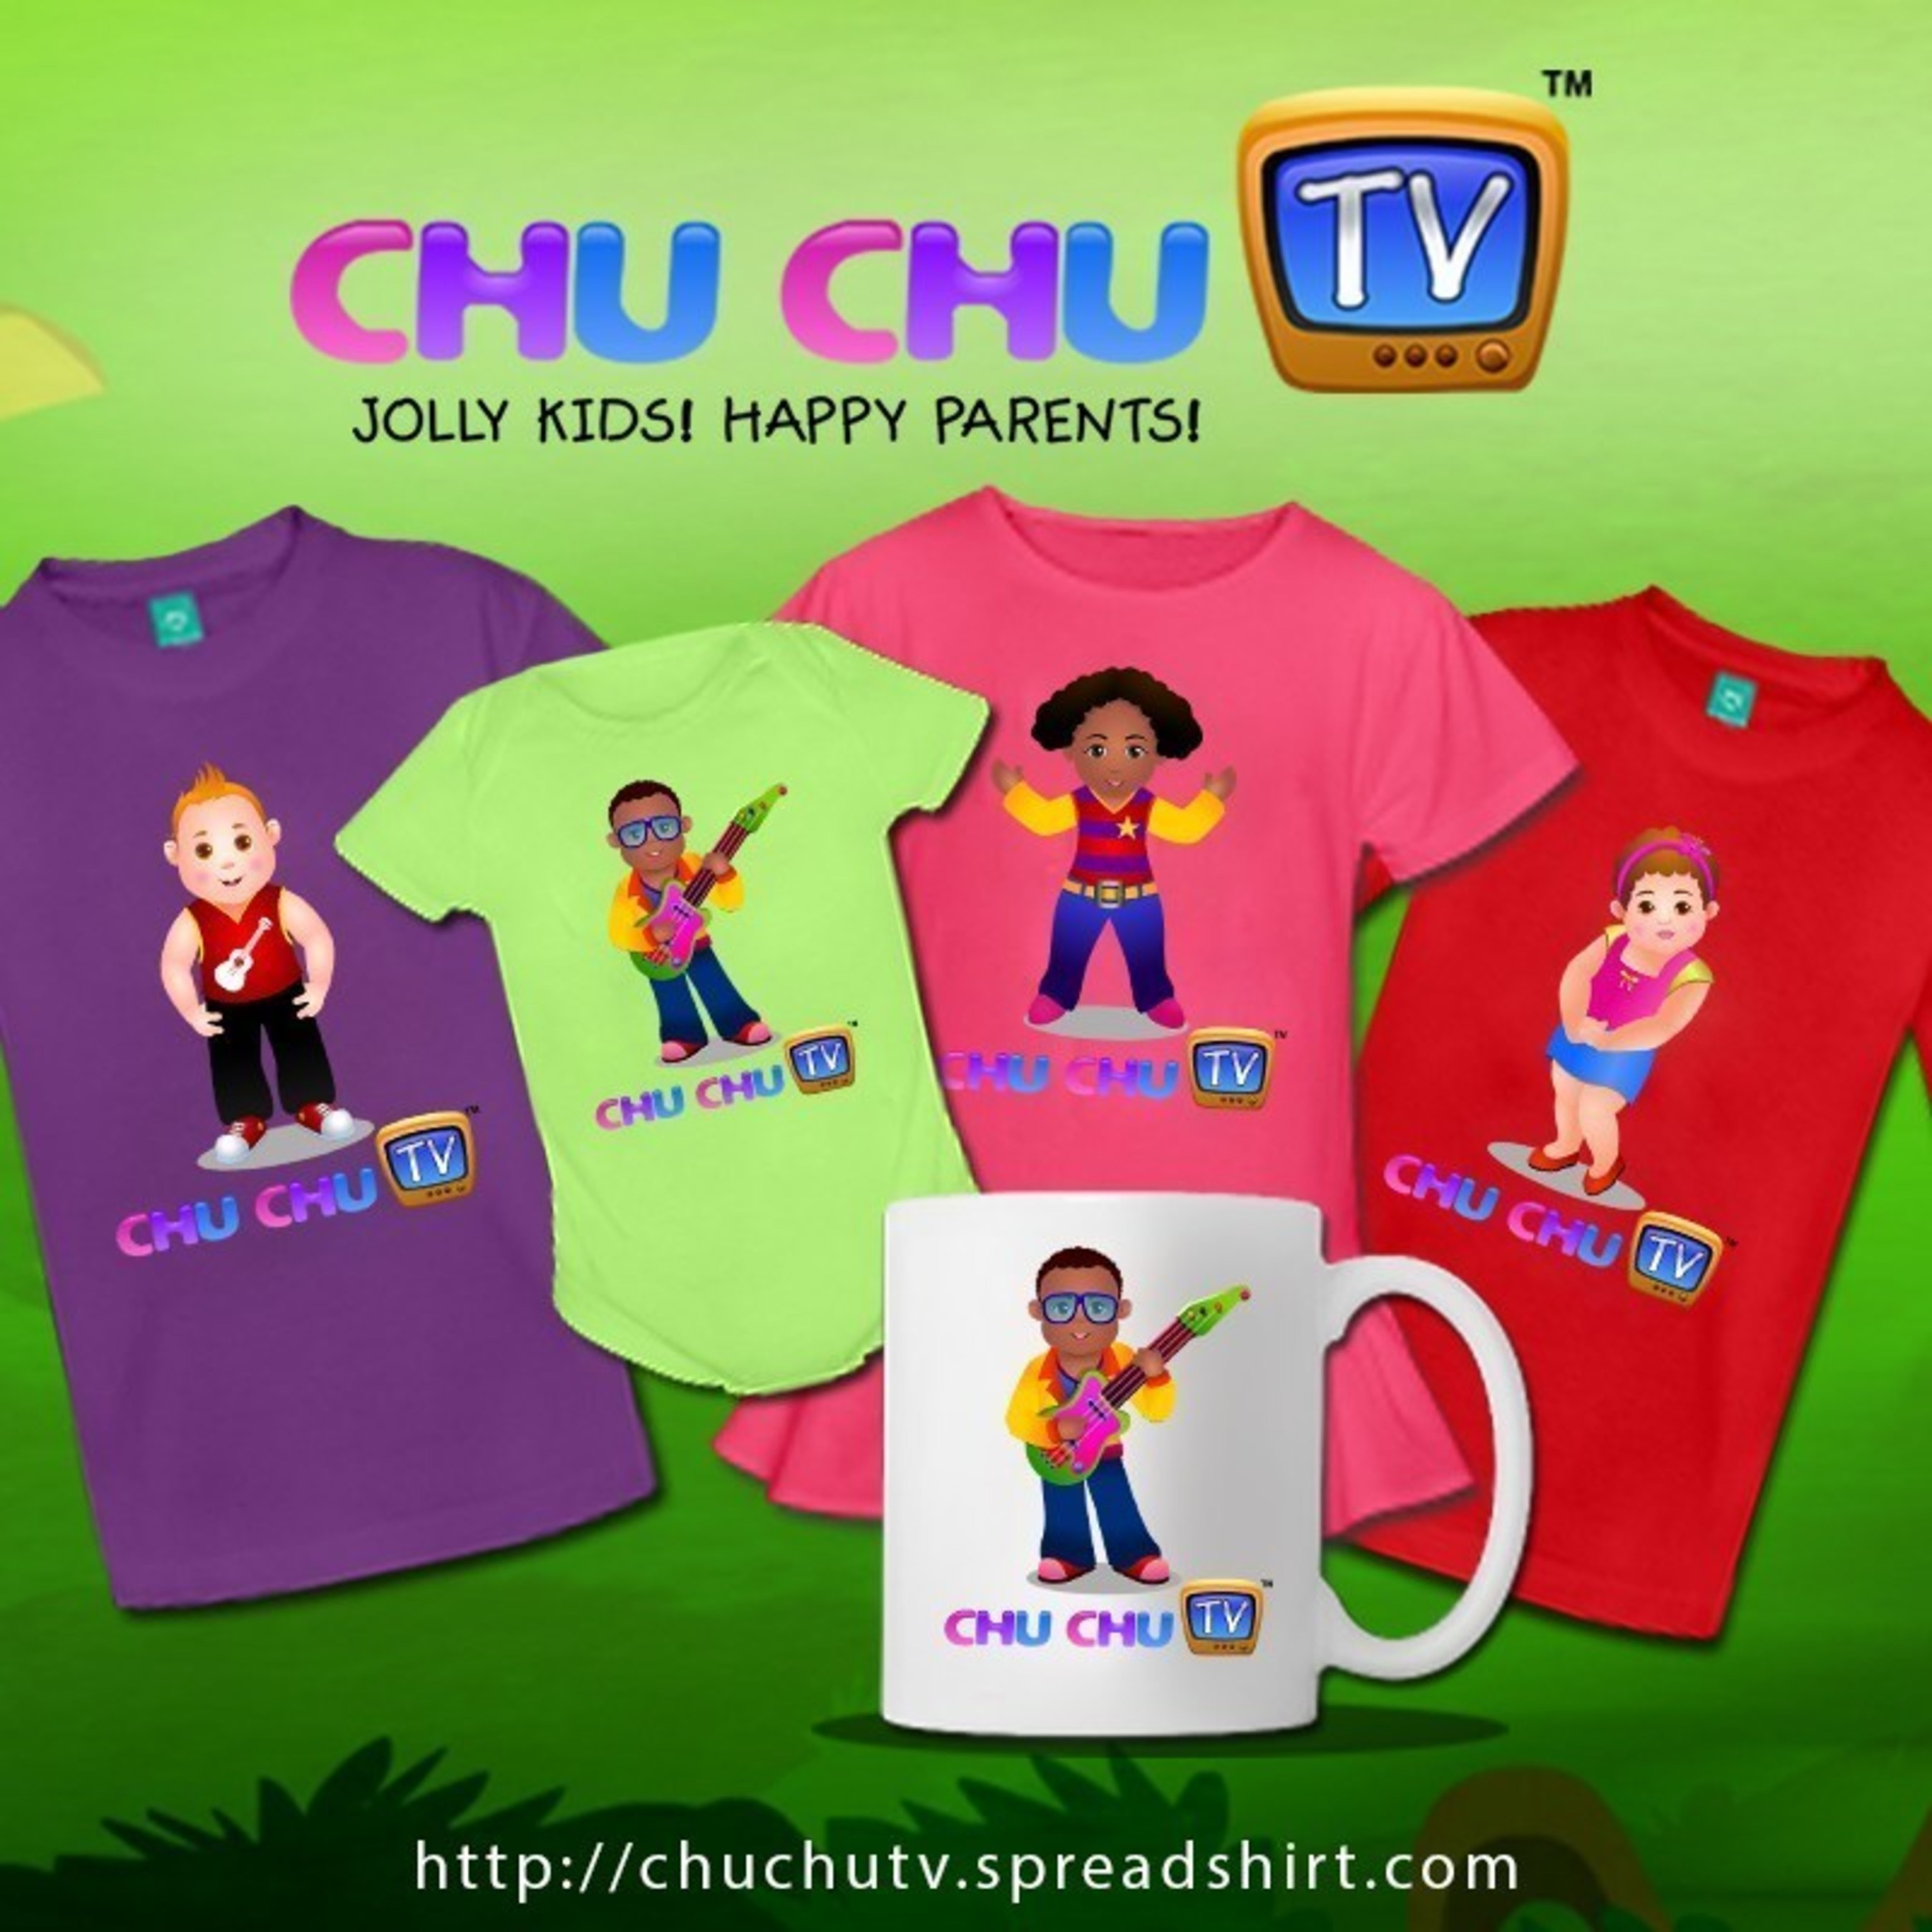 Children's YouTube Channel ChuChu TV Announces Partnership With